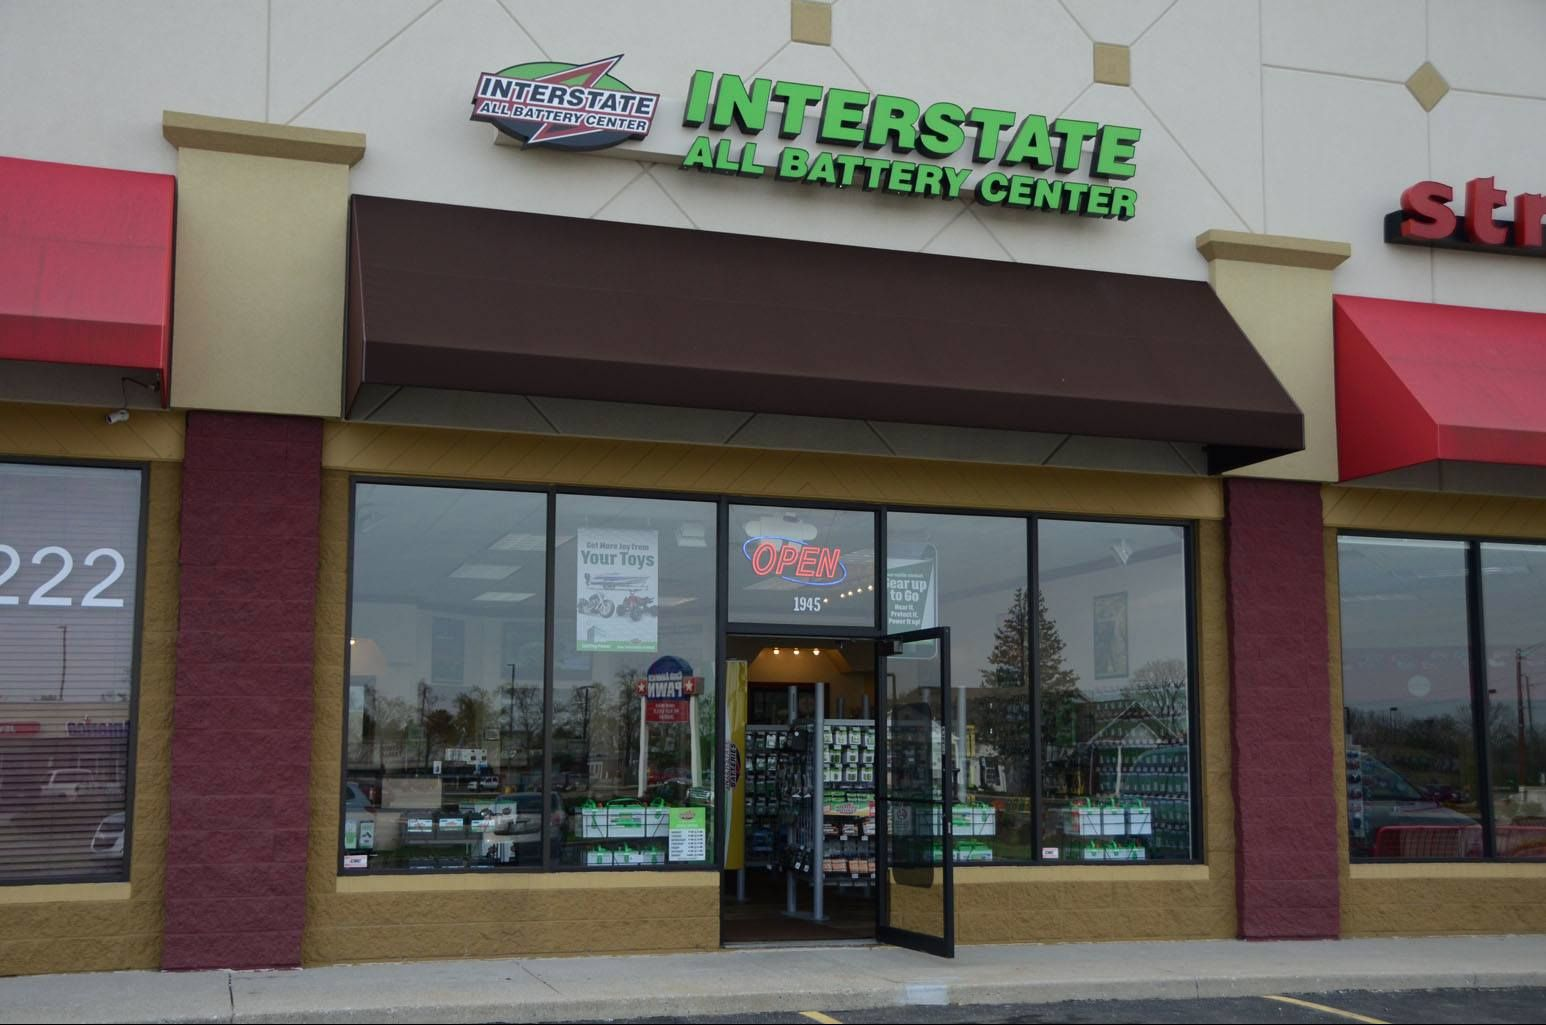 Interstate All Battery Center of Greenwood stocking new and used batteries for your car or truck